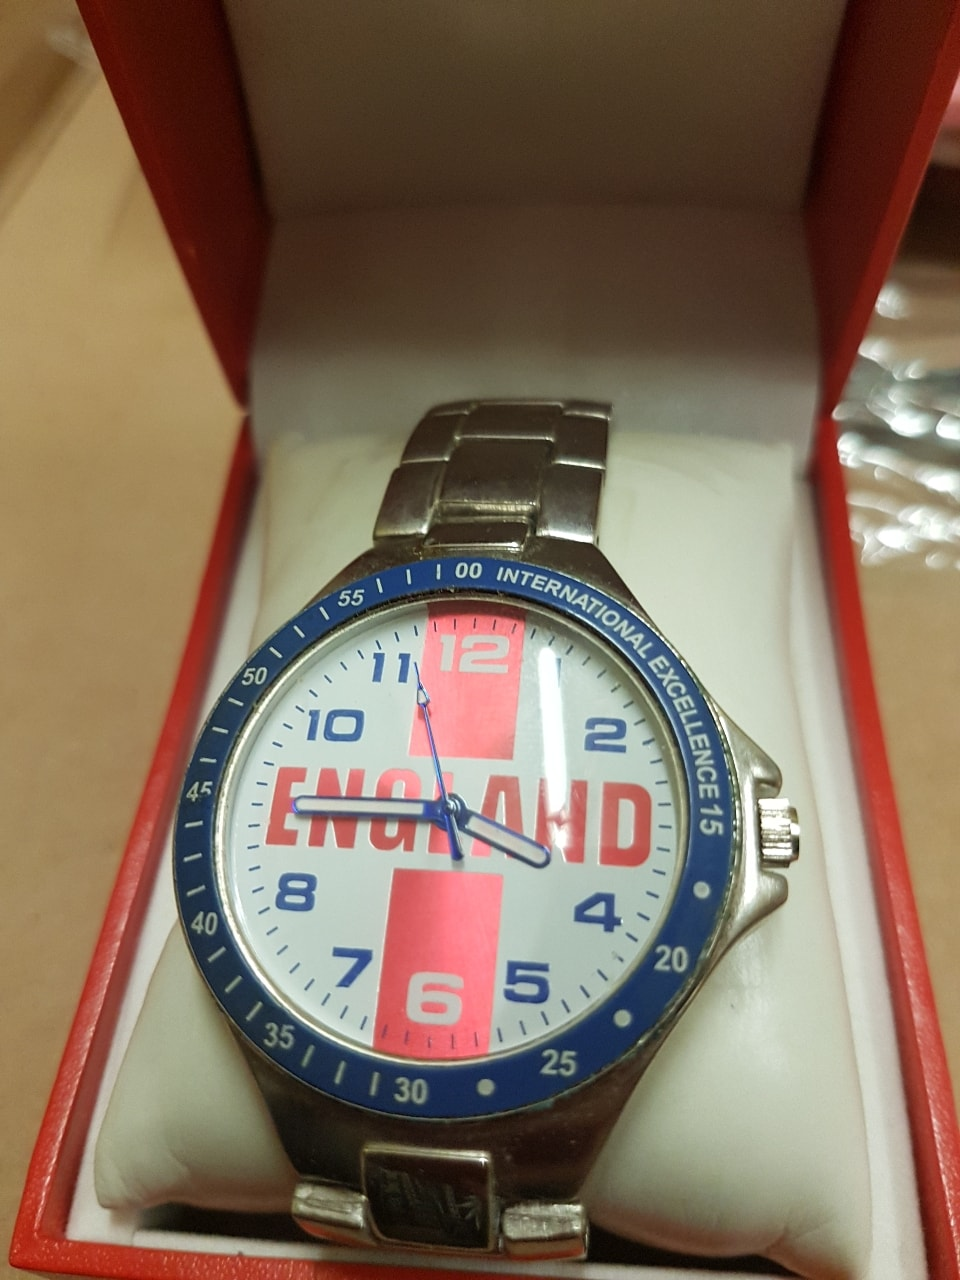 Watch  in box  don't no if working